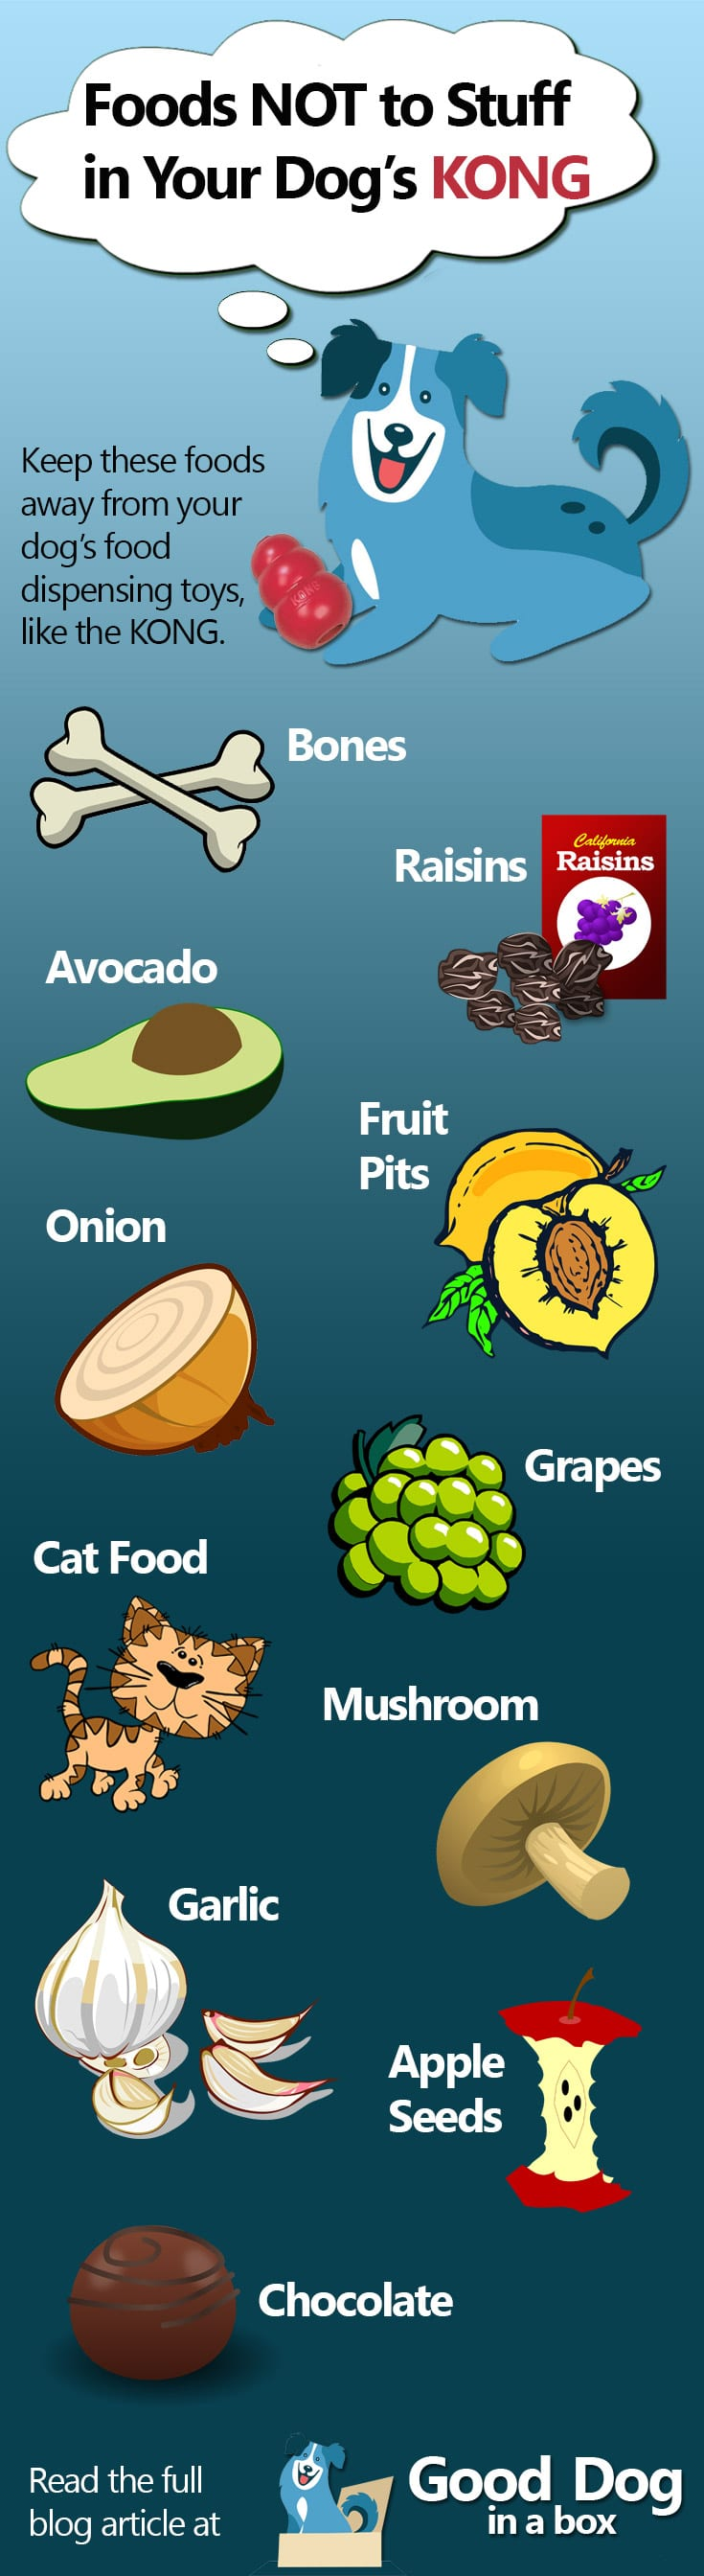 Foods Not to Stuff in Your Dog's Kong Infographic